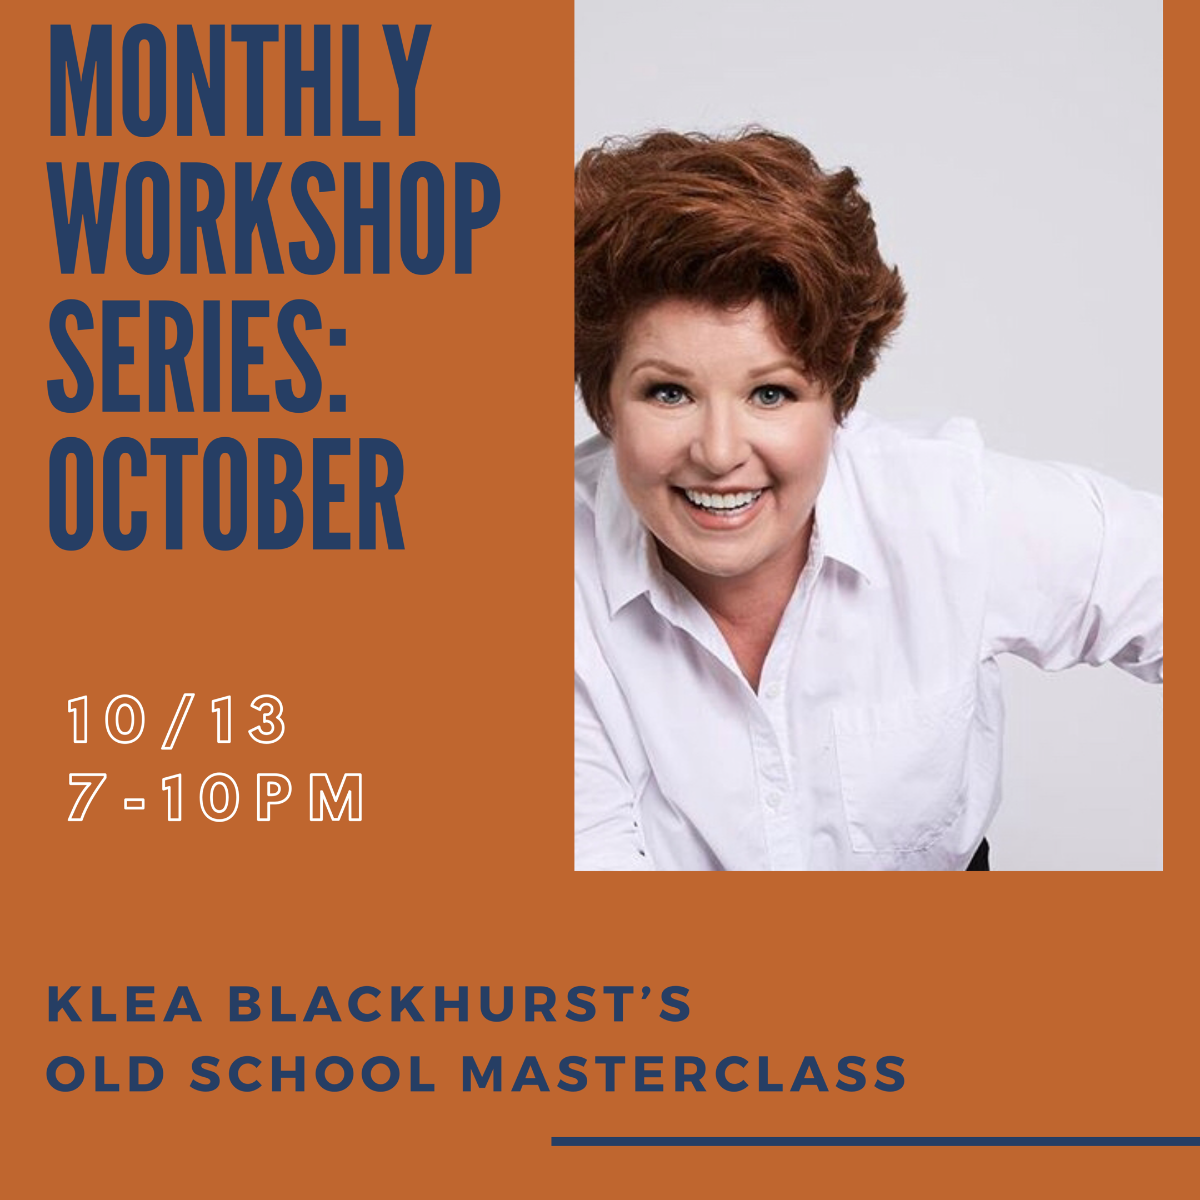 Monthly Wokshop Series: October. 10/13/19, 7-10pm. Klea Blackhurst's Old School Masterclass